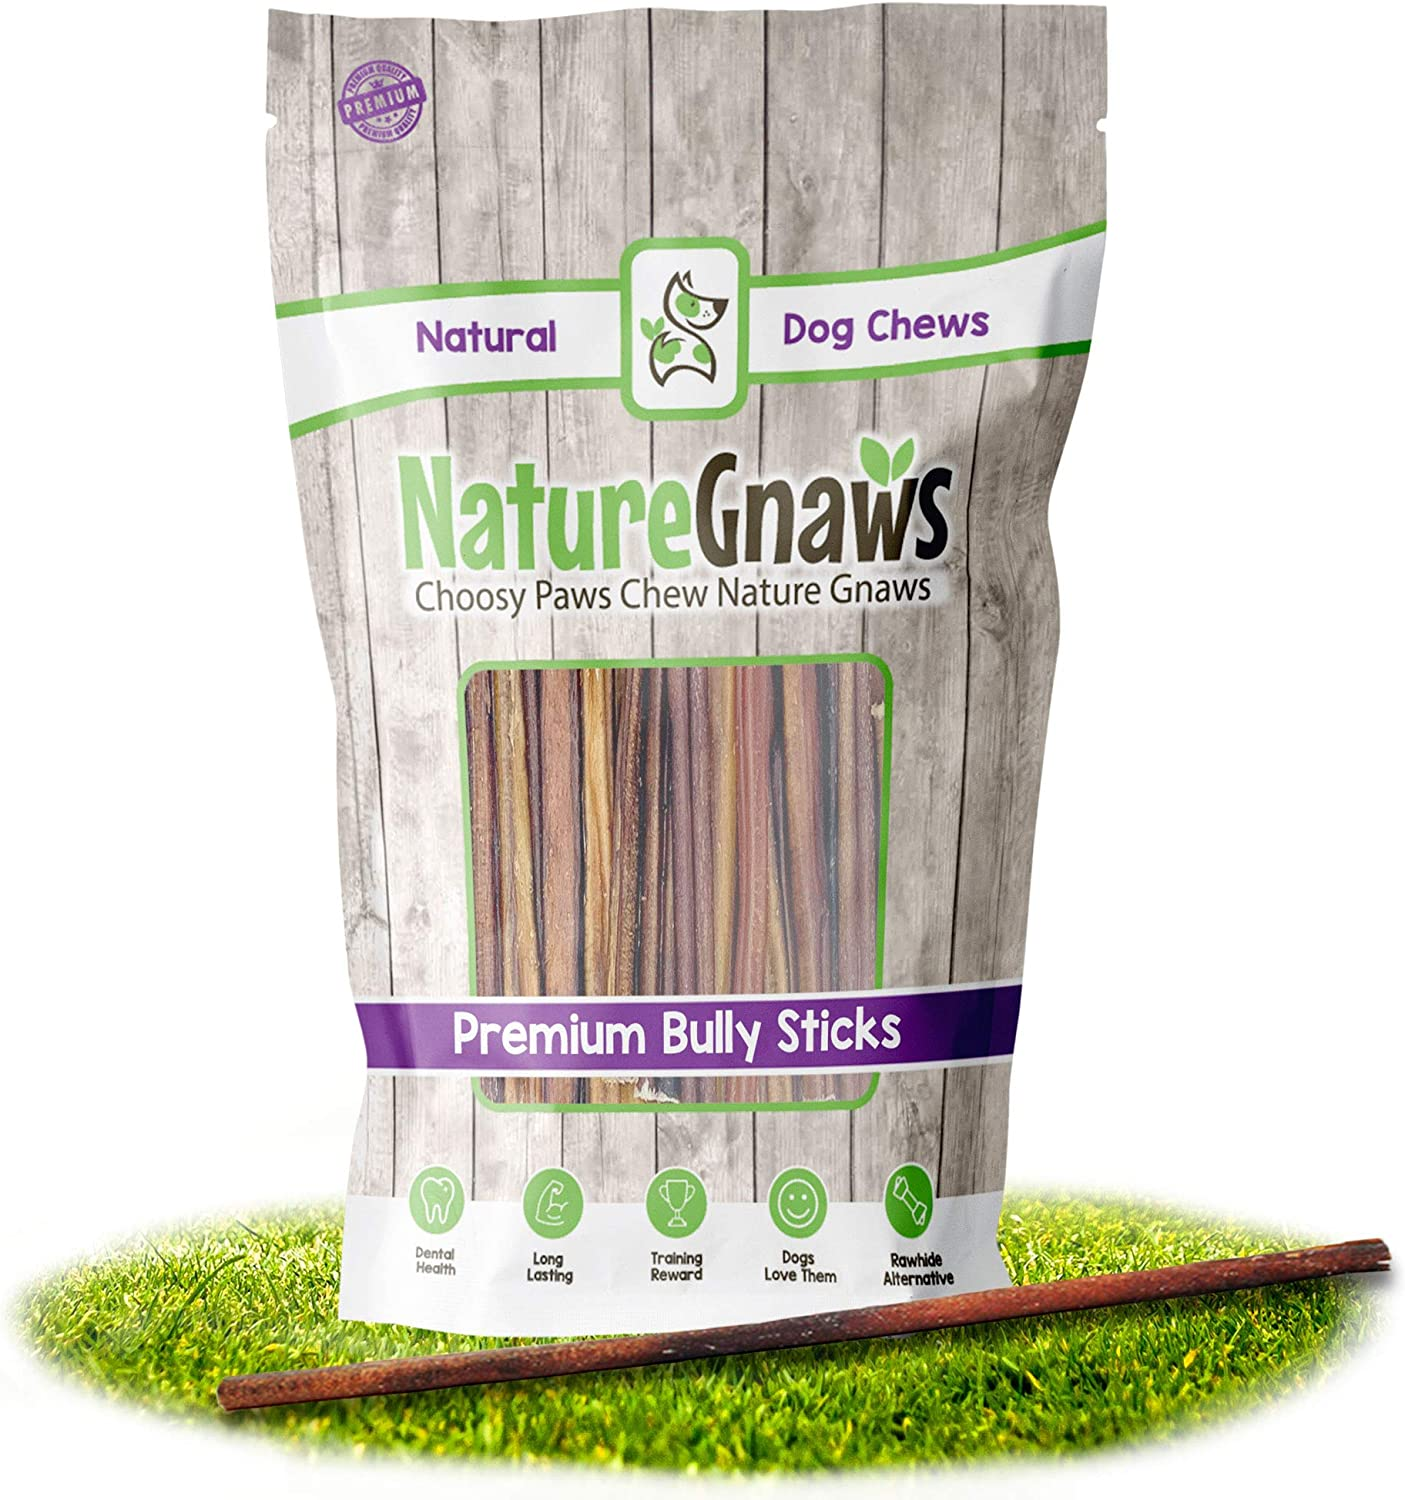 Nature Gnaws Super Skinny Bully Sticks for Very Small Dogs - Premium Natural Beef Bones - Long Lasting Dog Chew Treats for Toy Breeds - Rawhide Free - 6 Inch